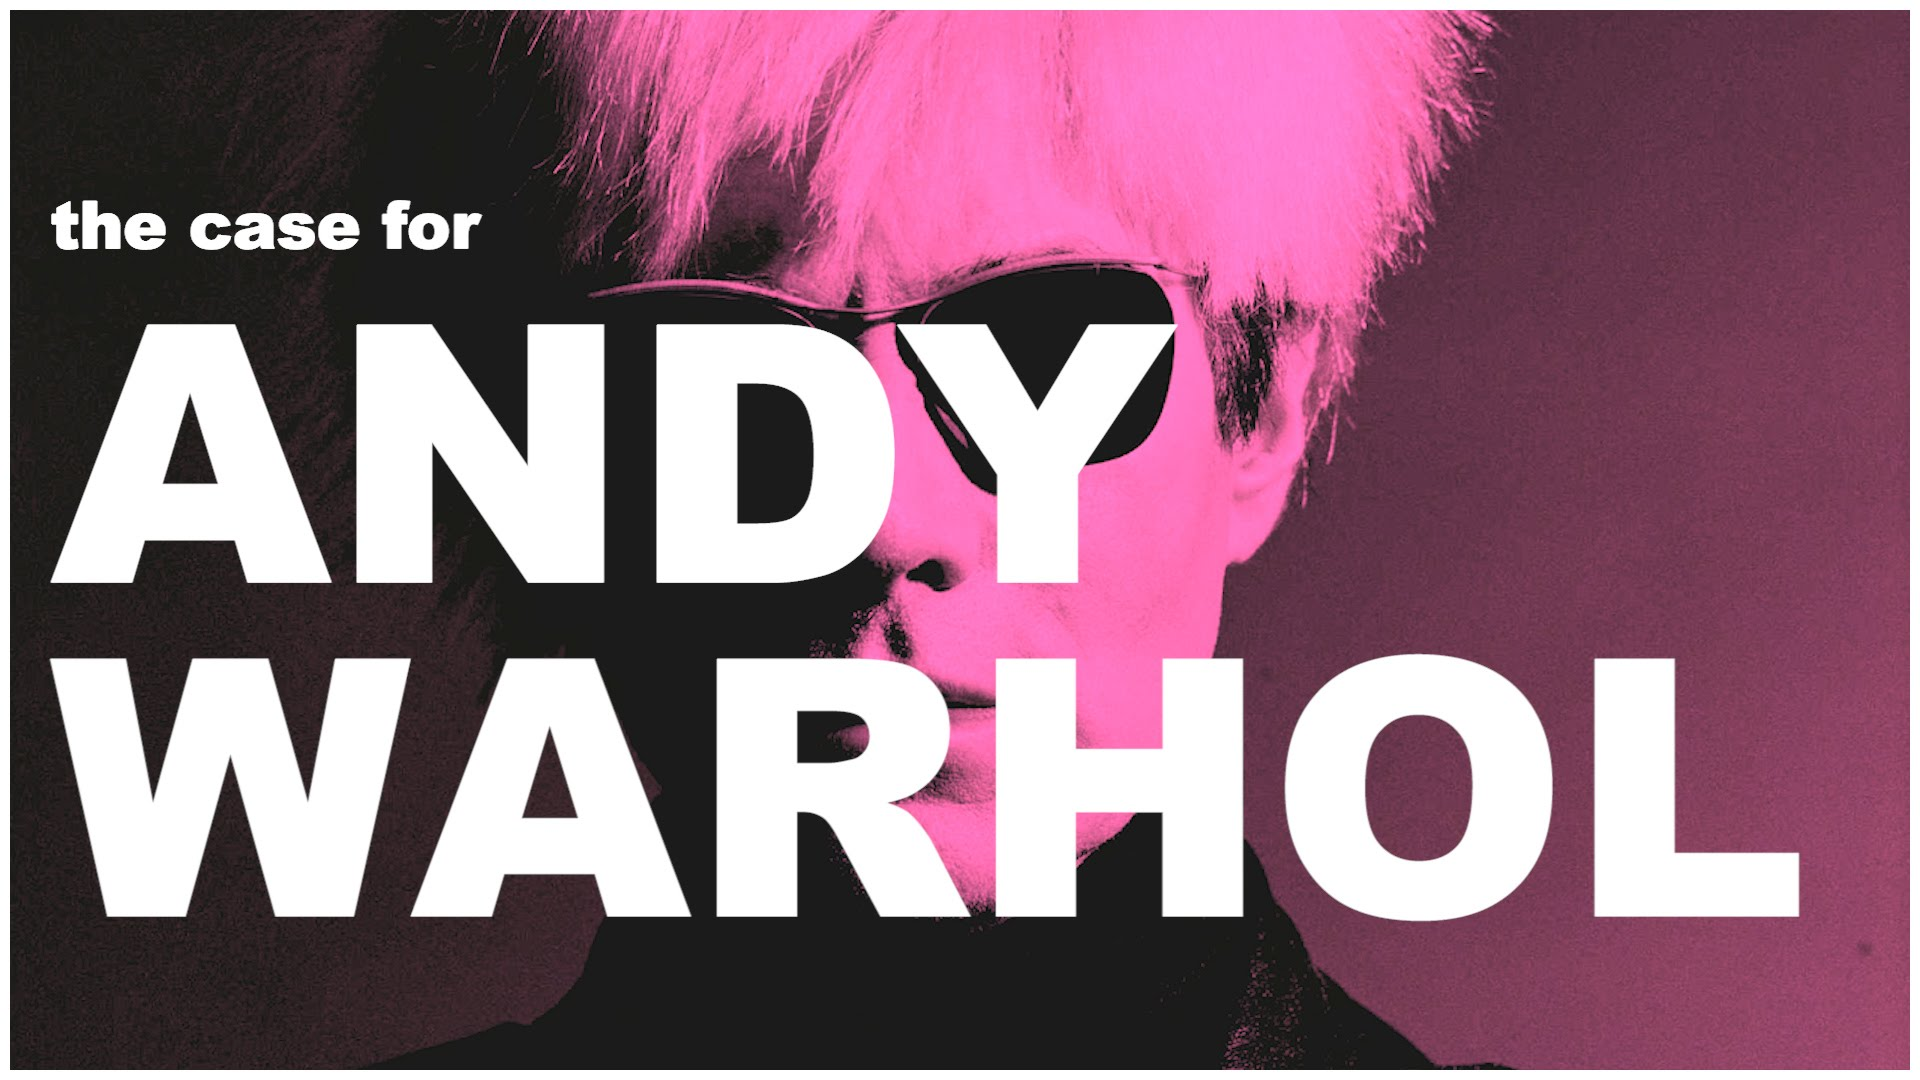 The Case for Andy Warhol in Three Minutes